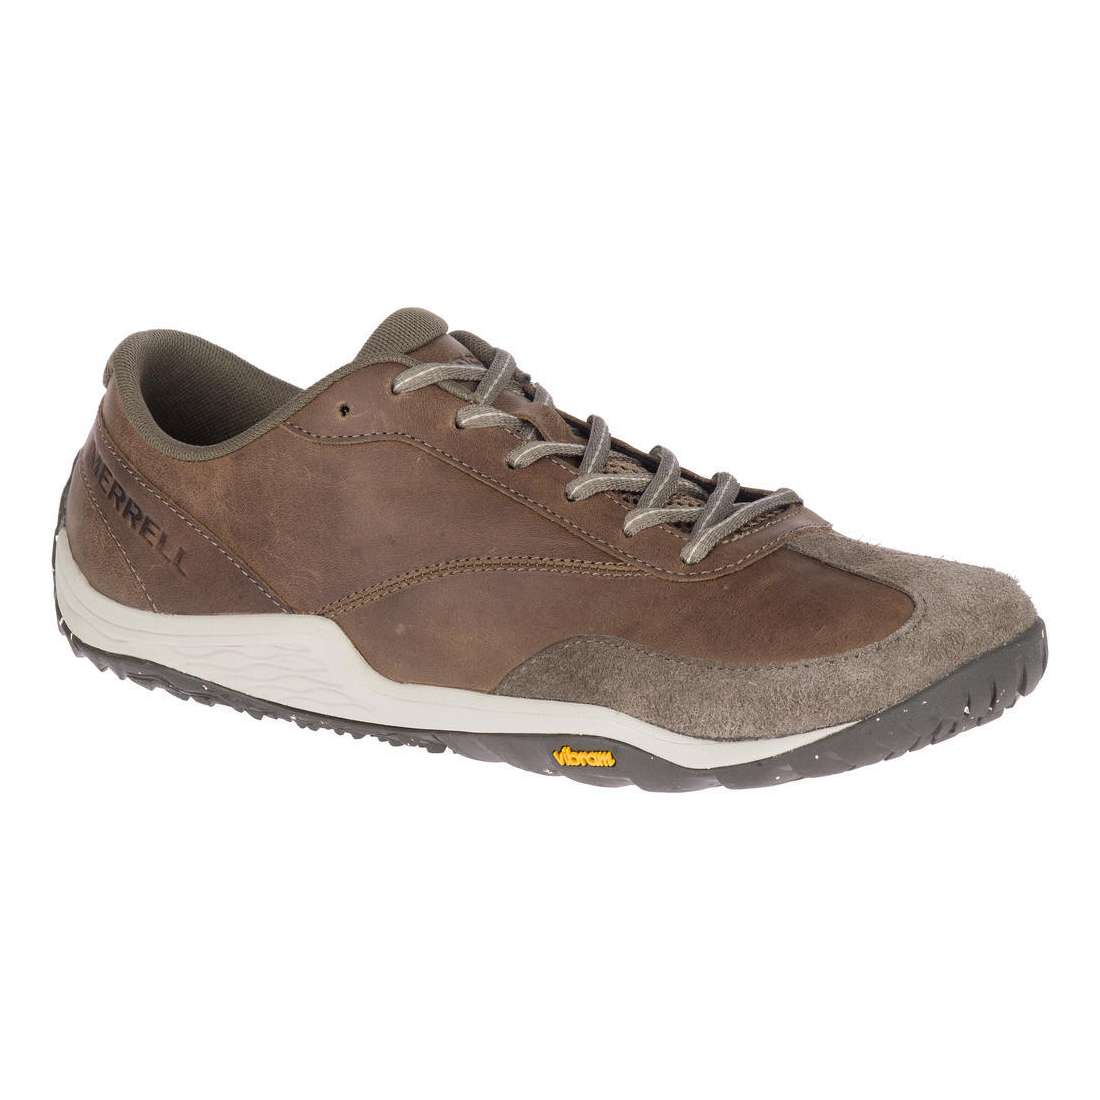 merrell trail glove shoes sale drop